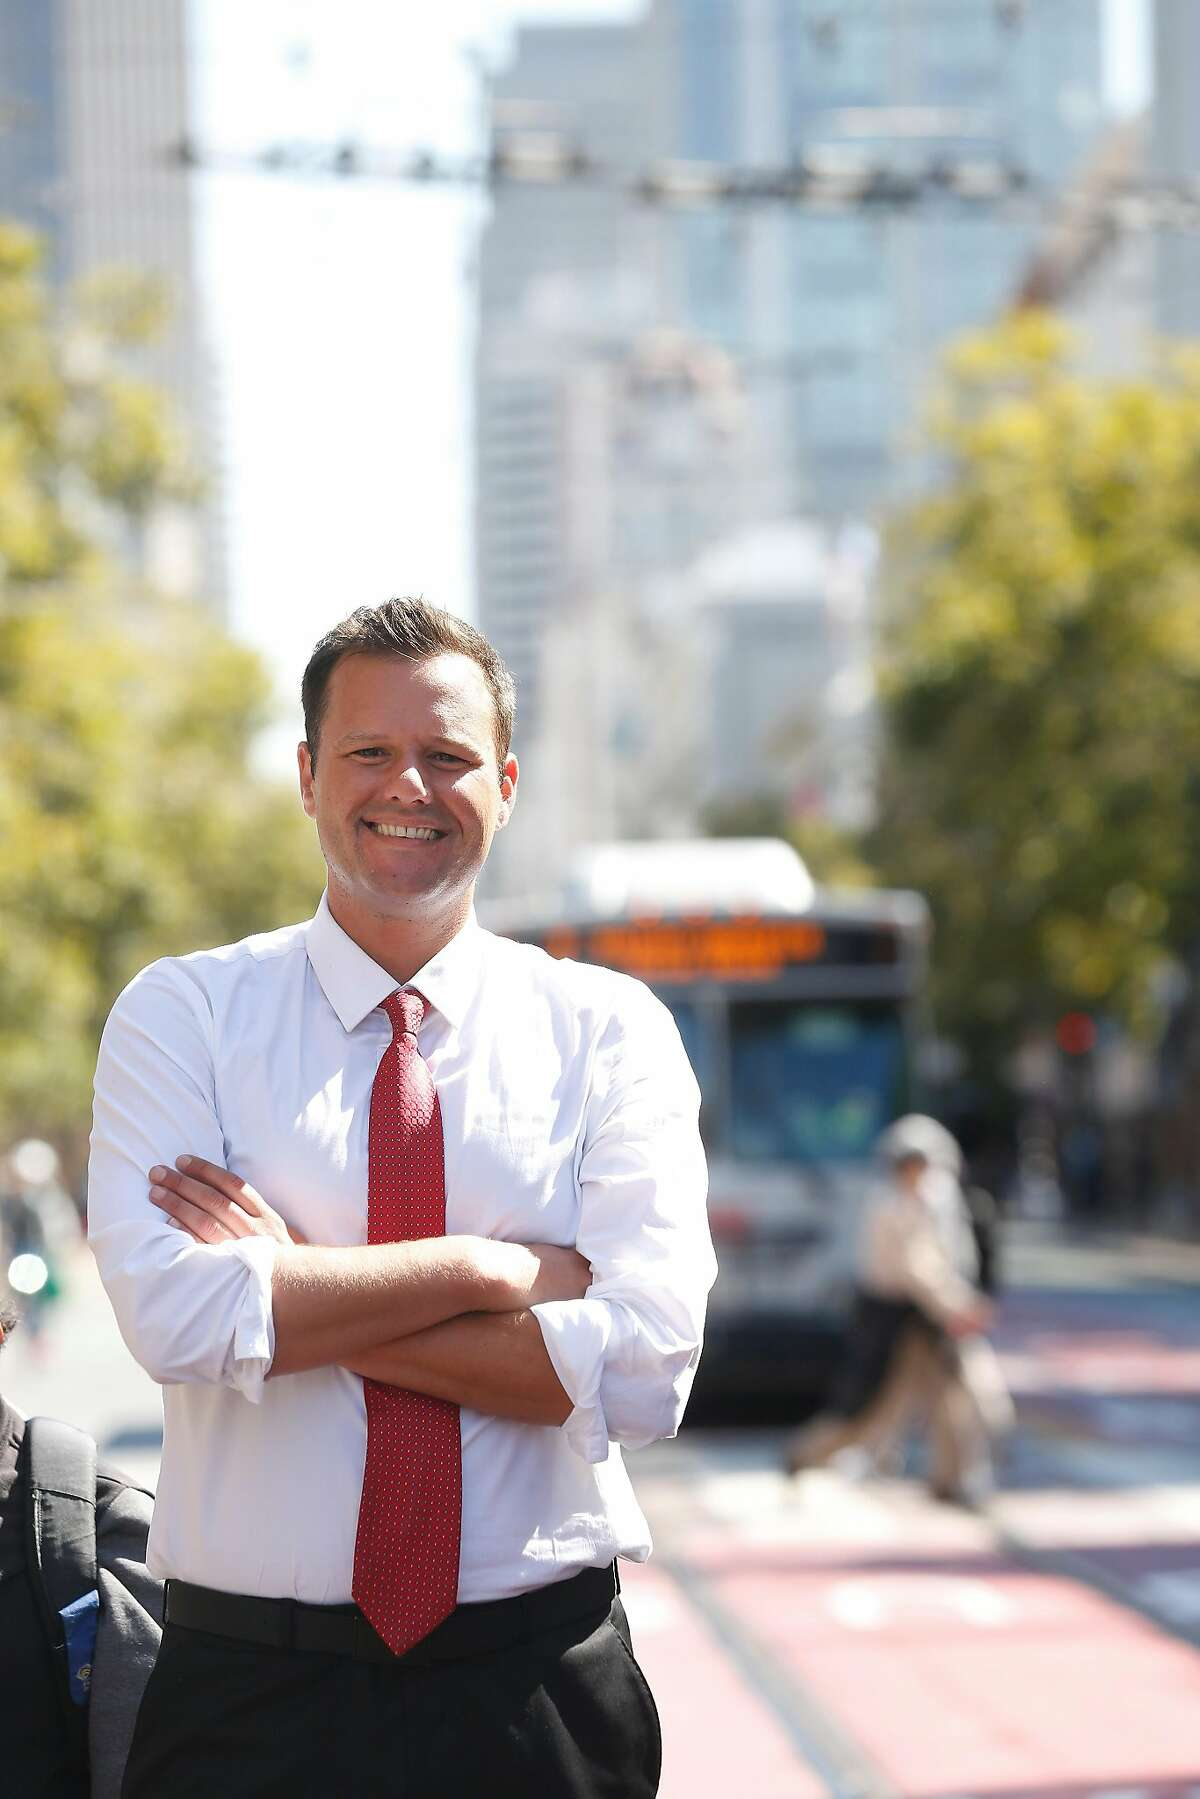 Matt Haney, San Francisco Board of Education commissioner and Dream Corps national policy director , stands on Market Street for a portrait on Monday, July 24, 2017 in San Francisco, Calif.